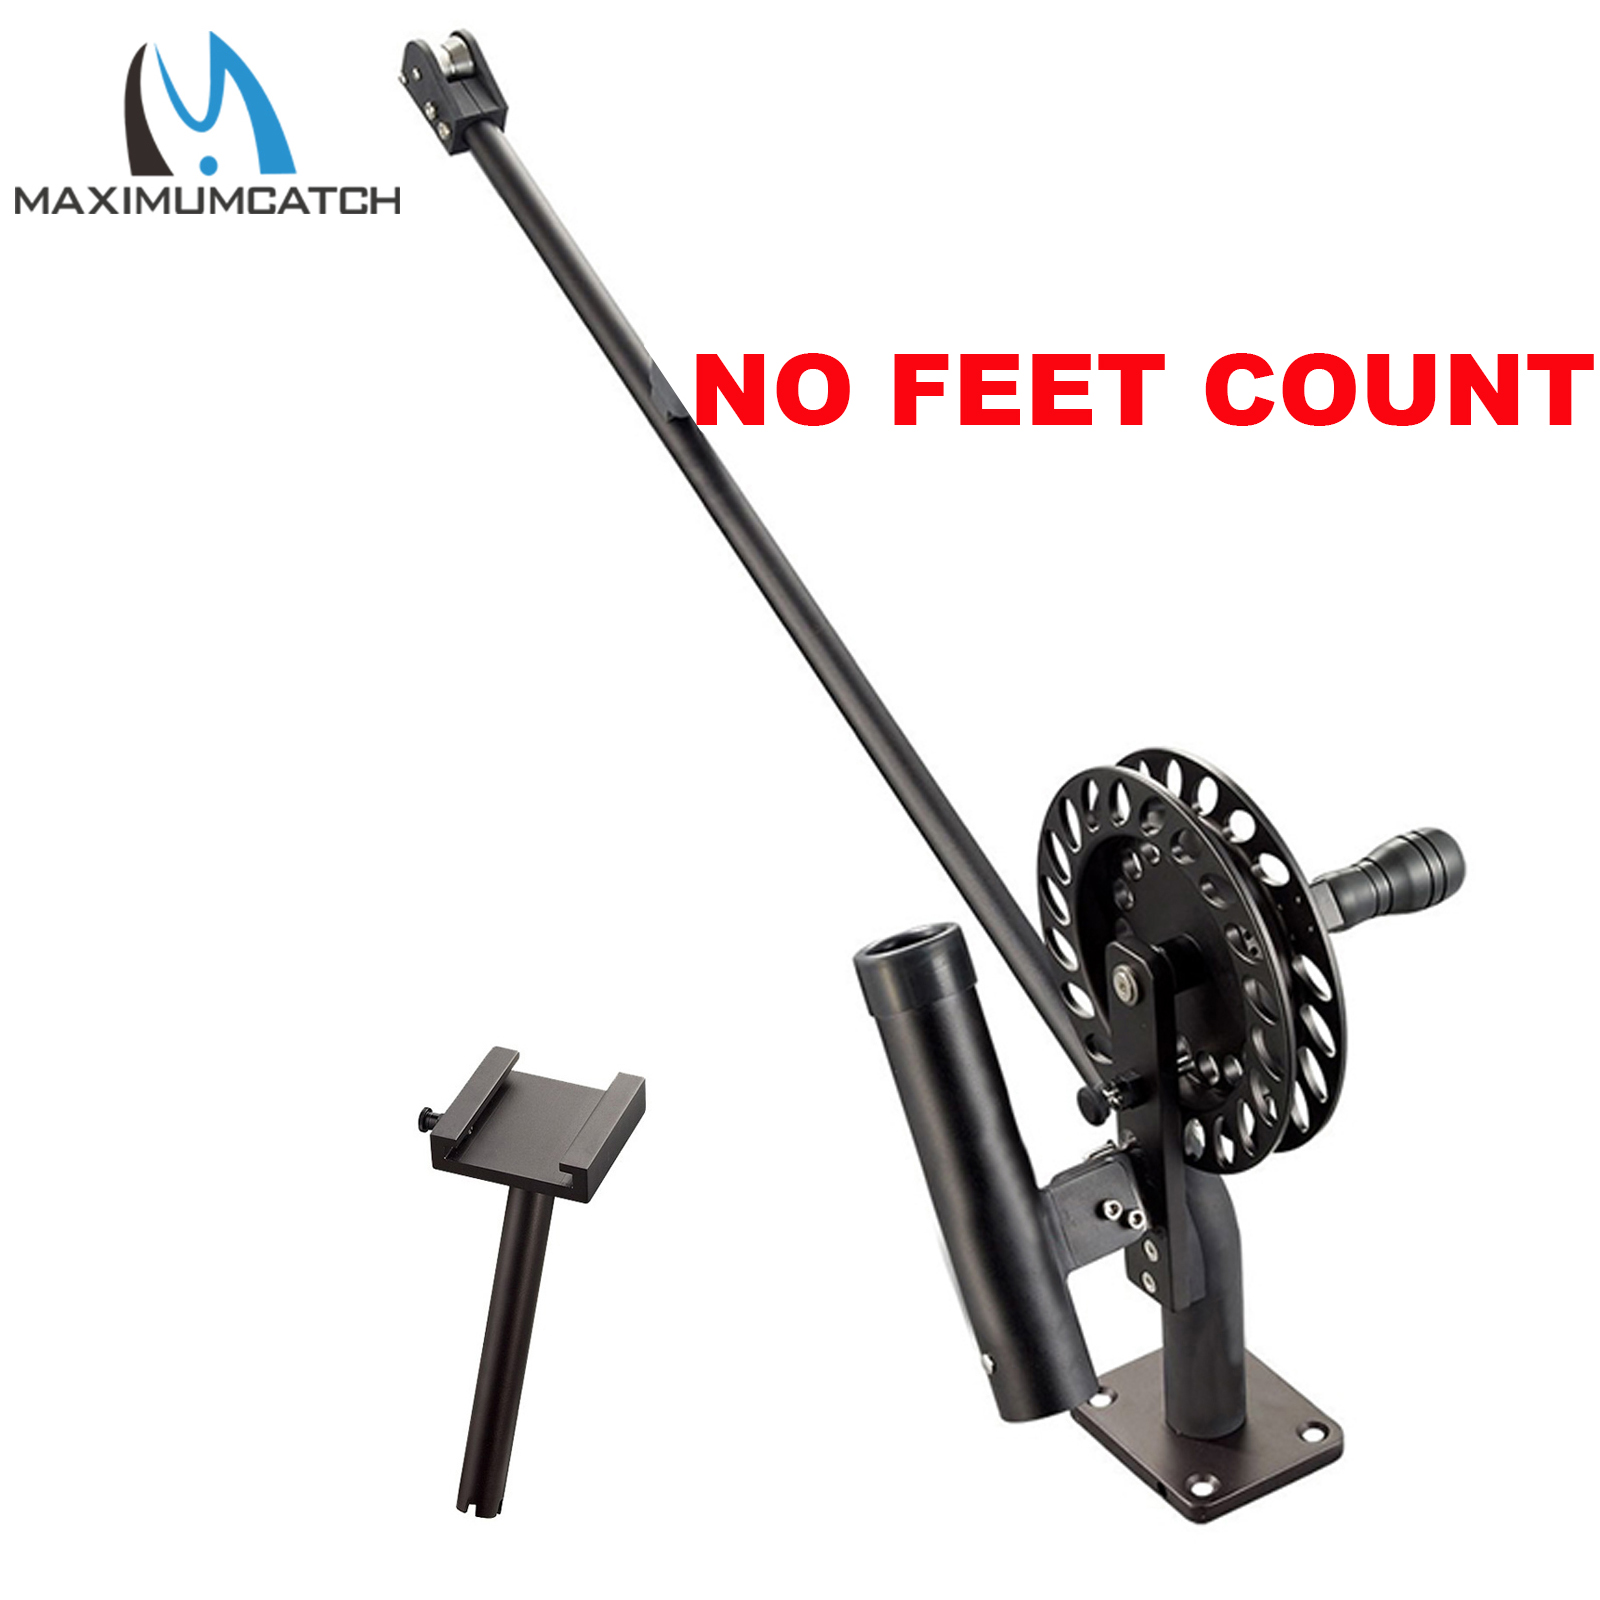 Maximumcatch Fishing Manual Downrigger With Feet Counter CNC Machine Aluminum With Adjustable Drag And Stop Pin Drag Lock